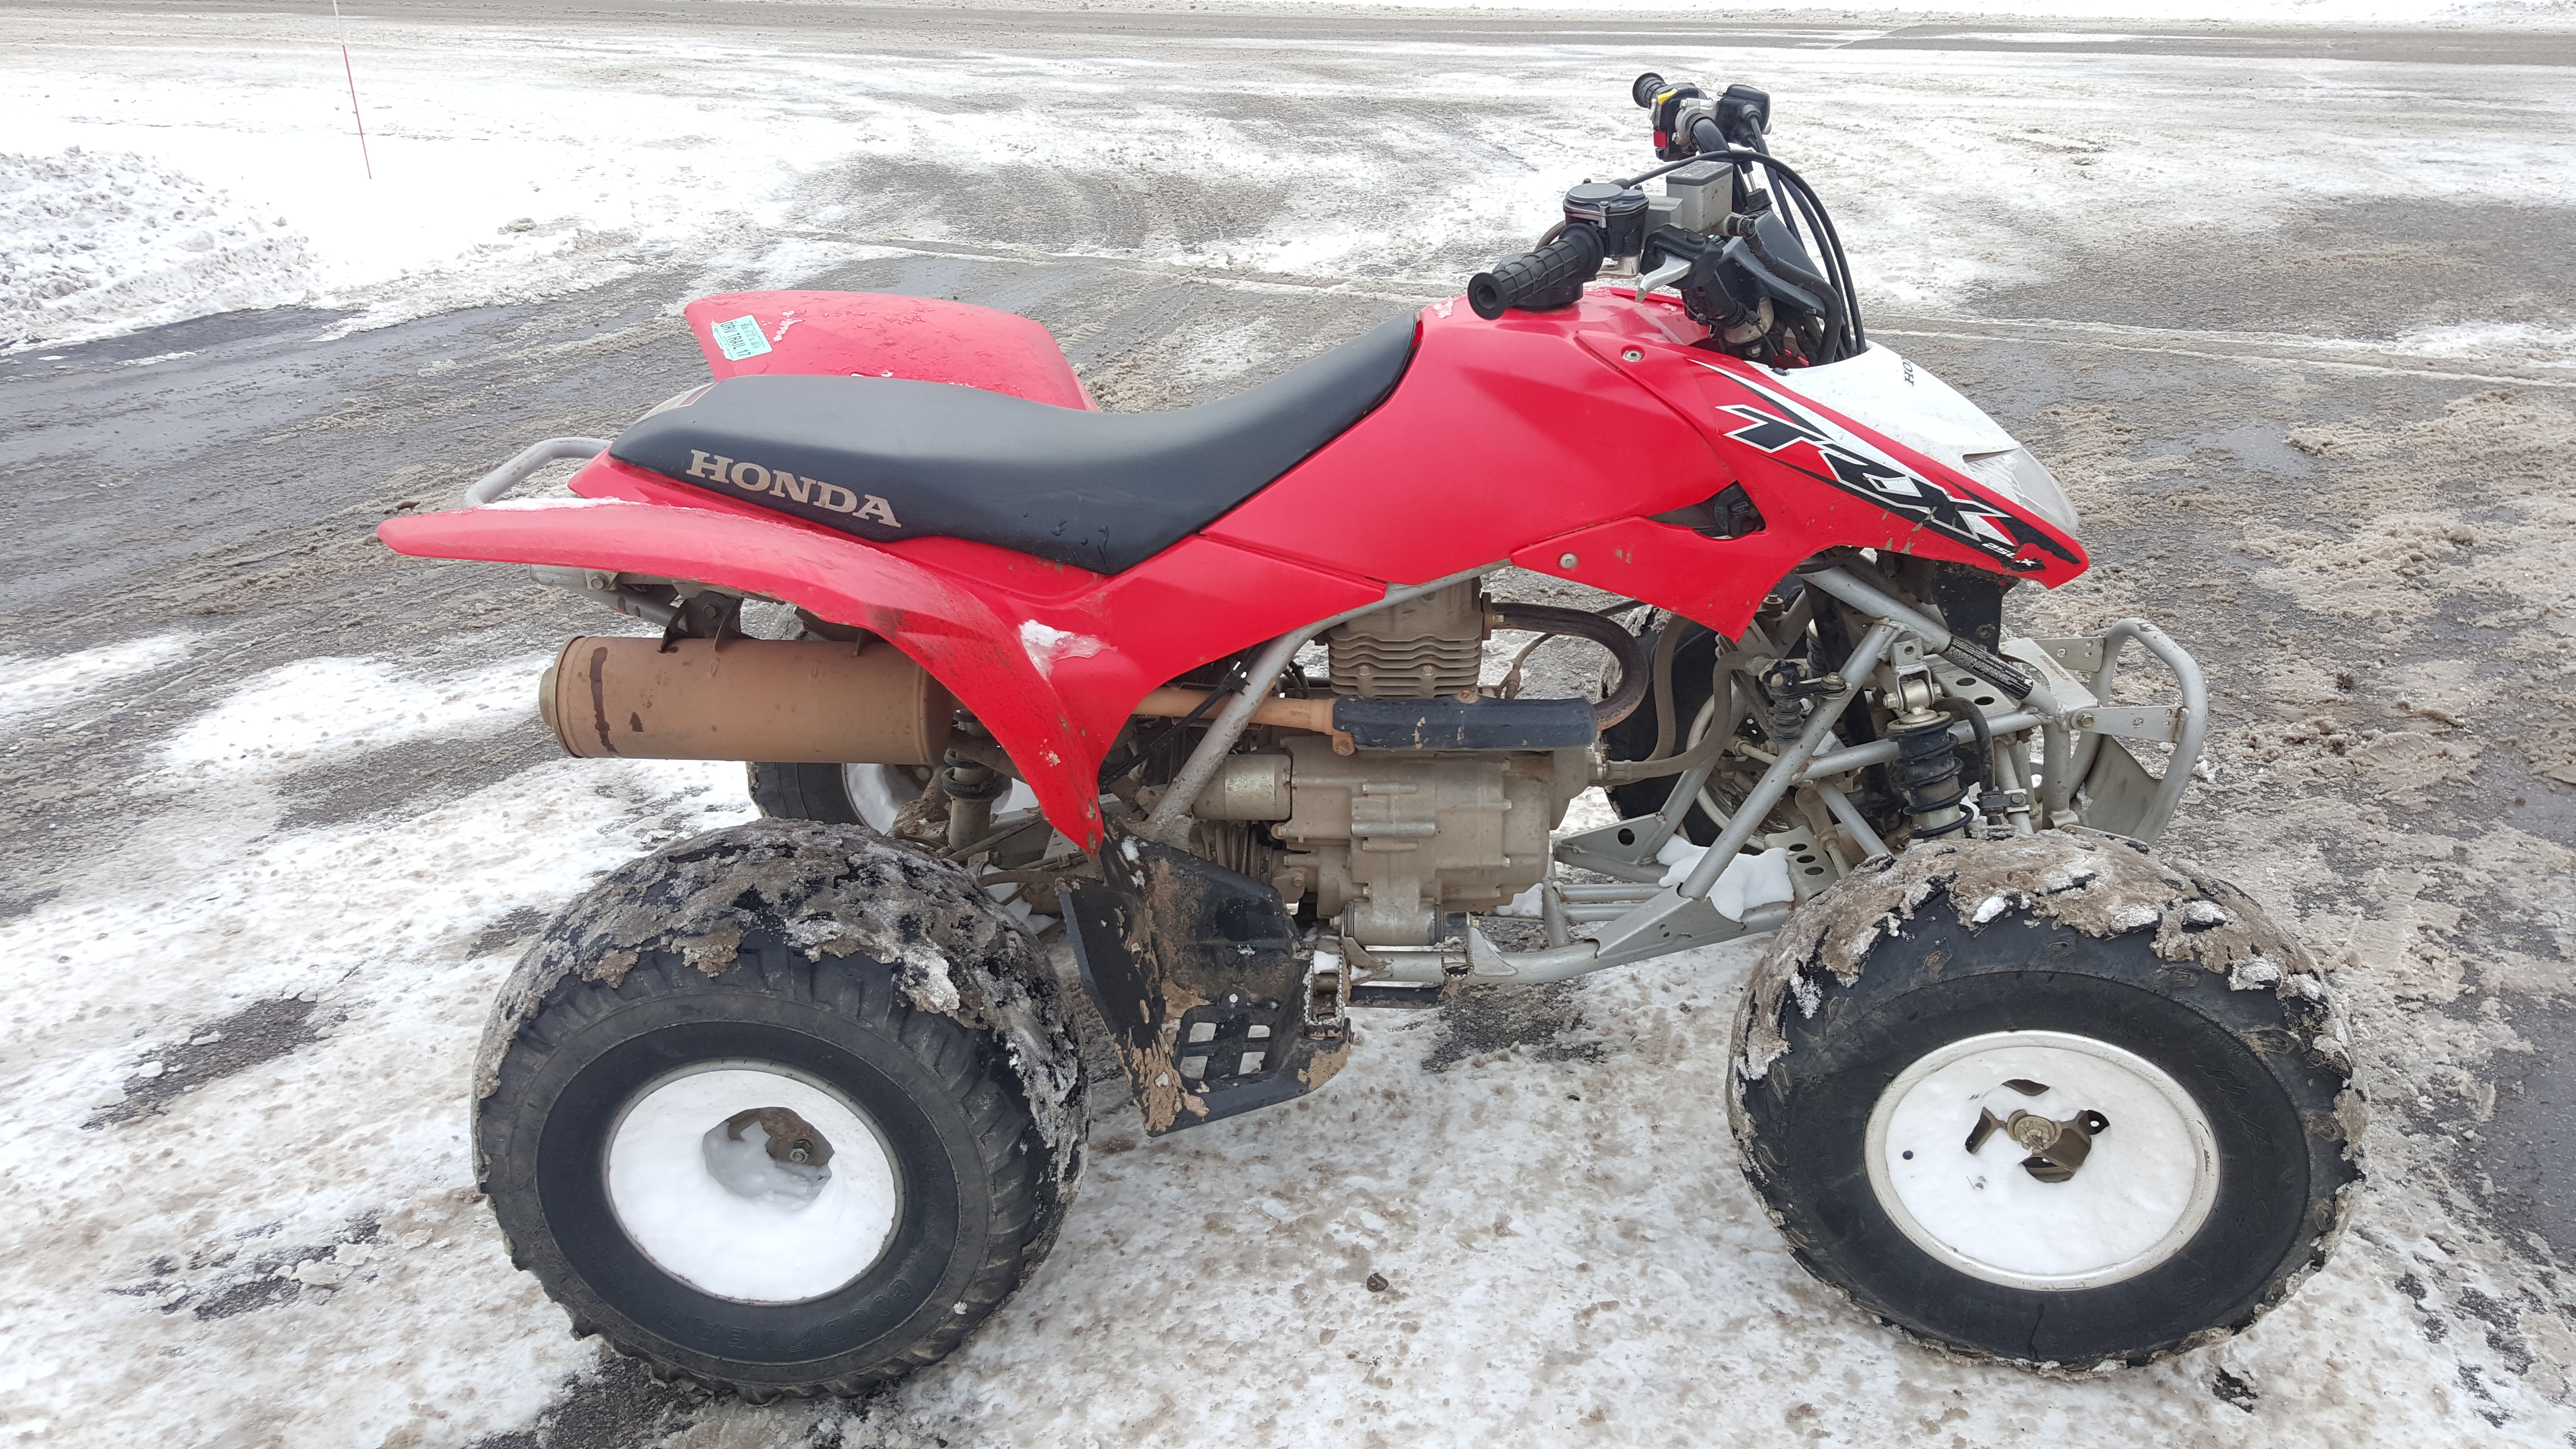 inventory rk reduction atvs statewide rmc honda for sale wheelers service four next previous auction